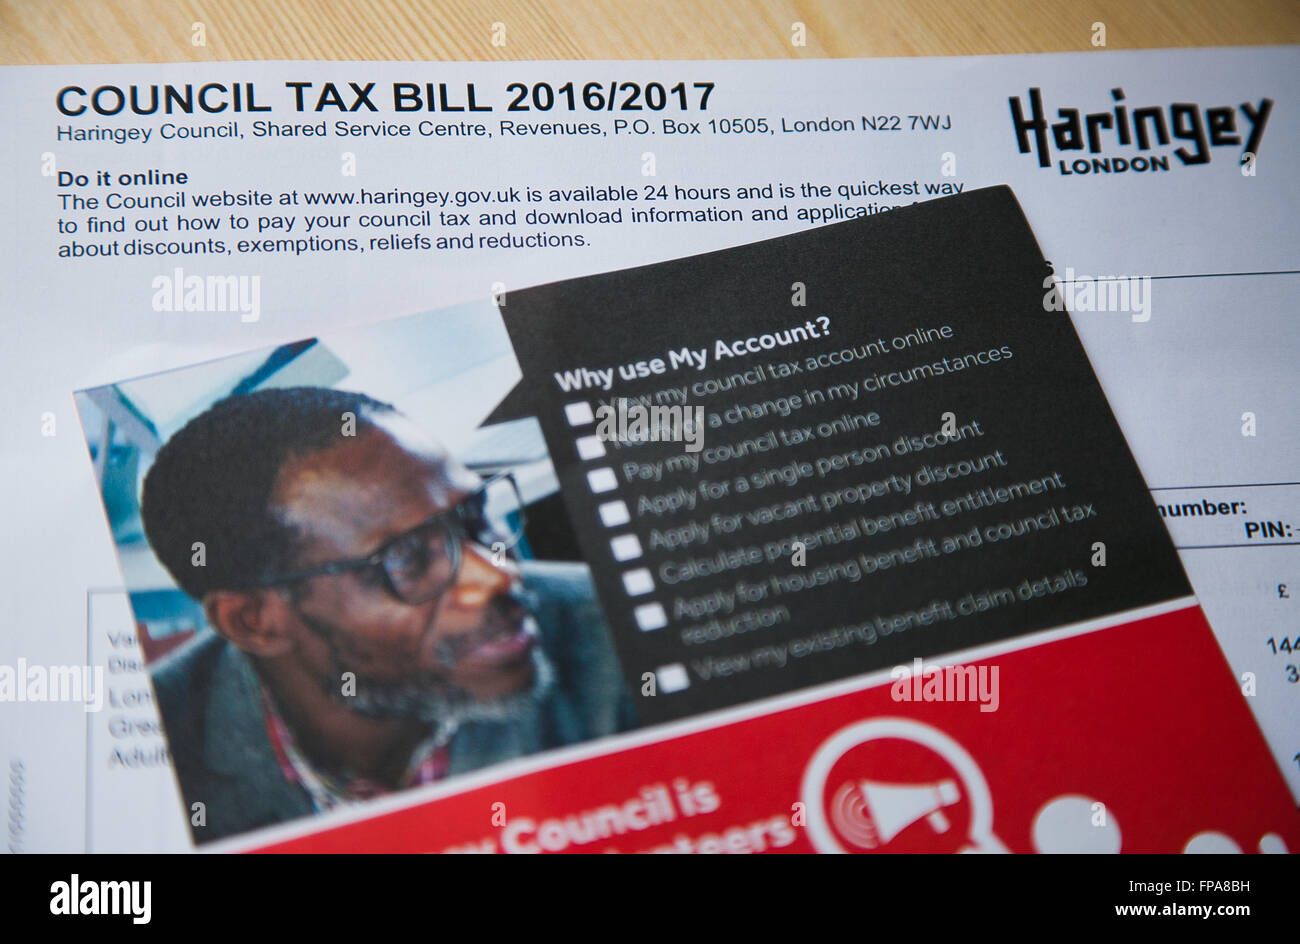 Haringey residents starts to receive their council tax bills for 2016/17. - Stock Image